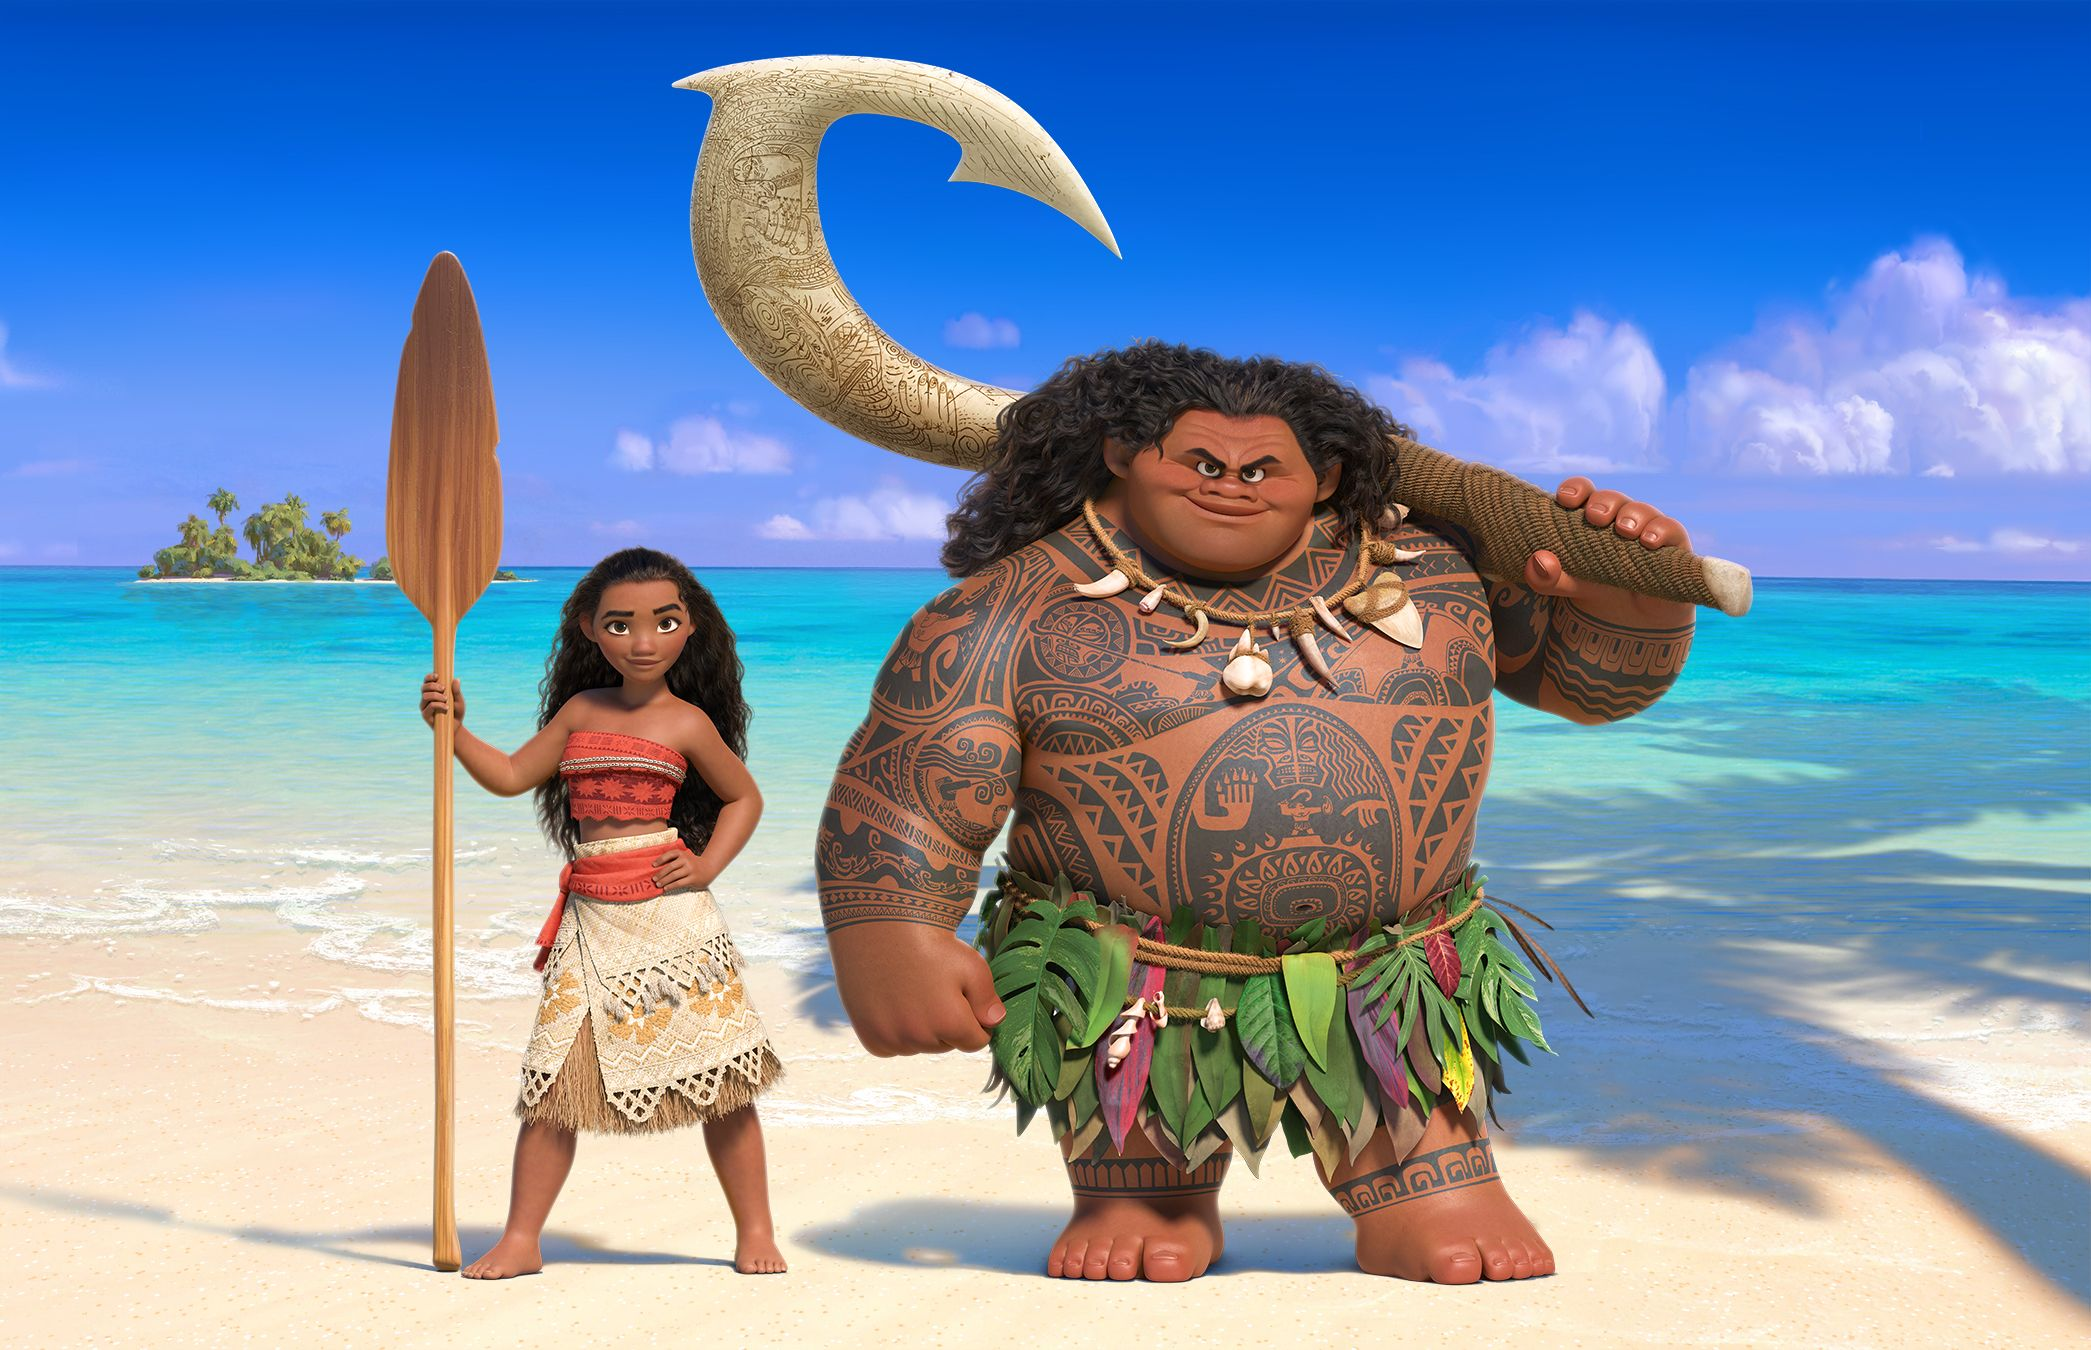 Disney Animated Movie Moana Finds Lead Actress